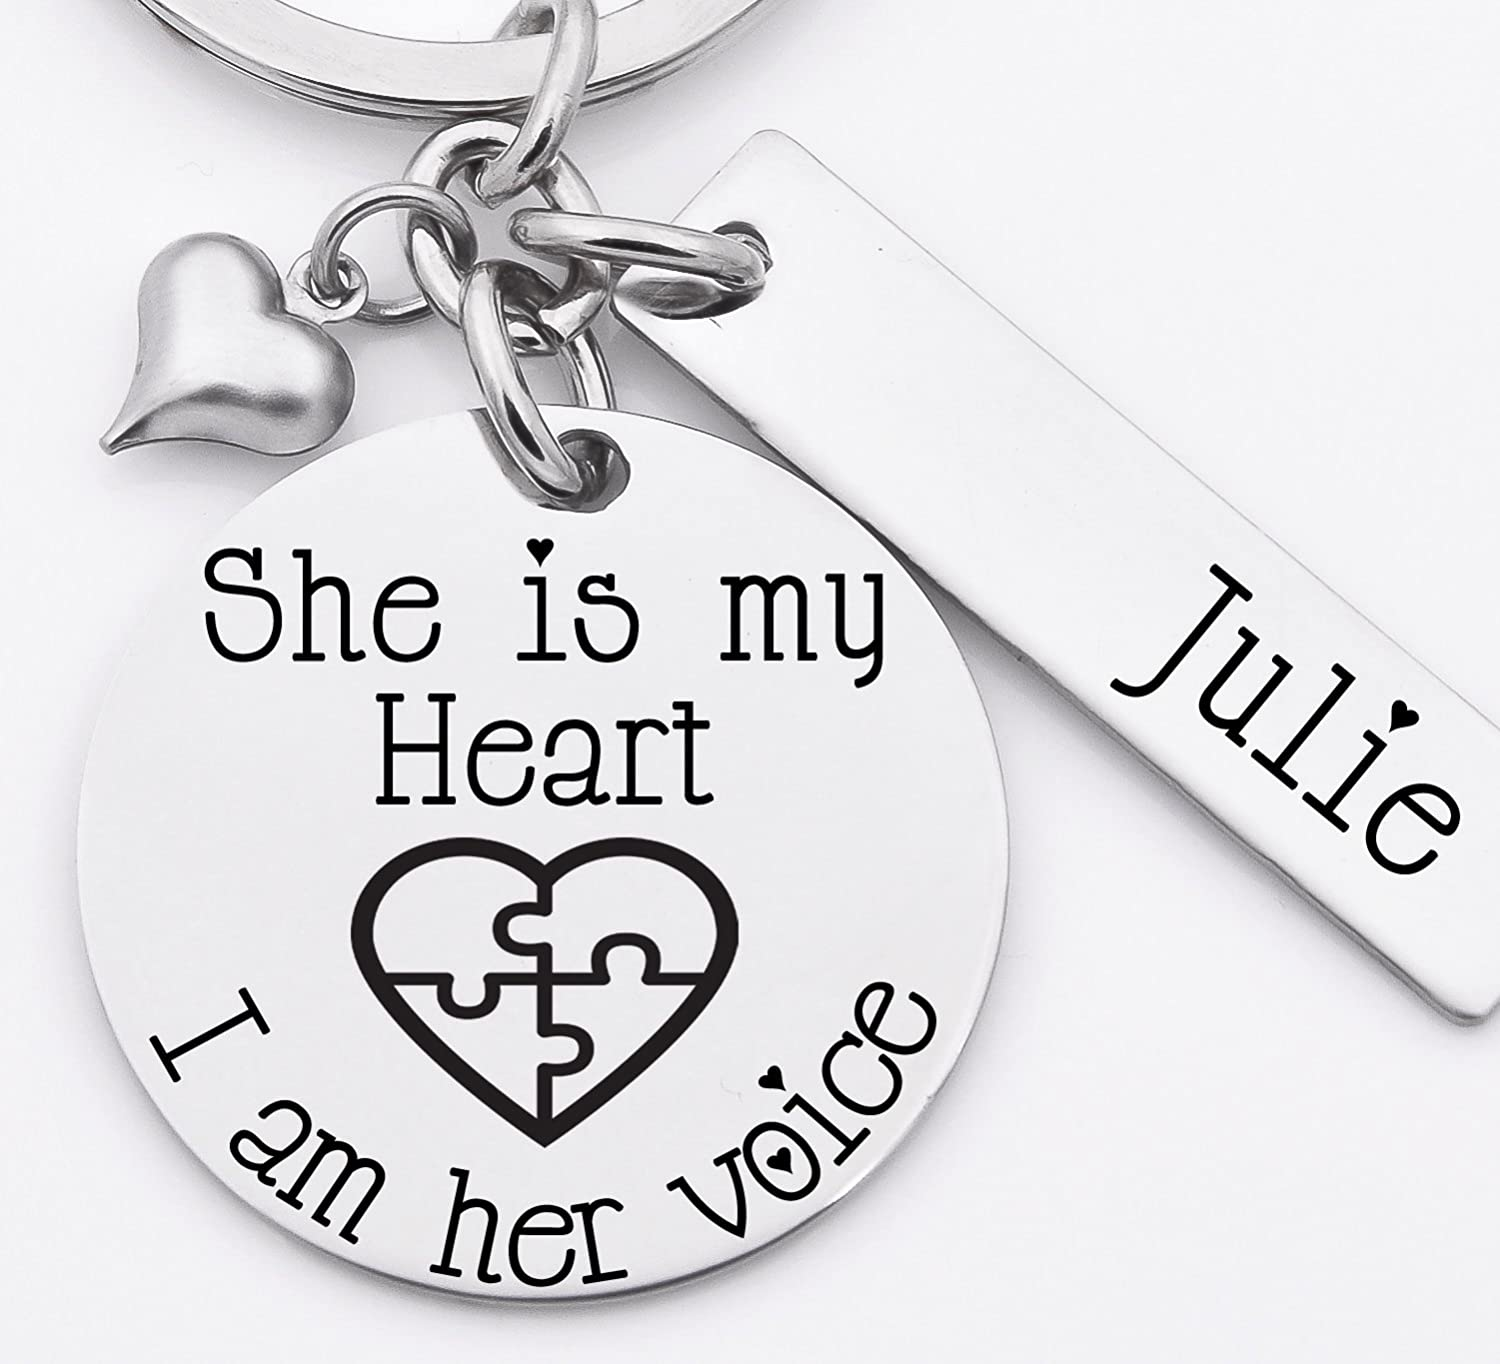 Autism awareness key chain, stainless steel key chain, personalized, She is my heart I am his voice, with a heart with puzzle pieces.